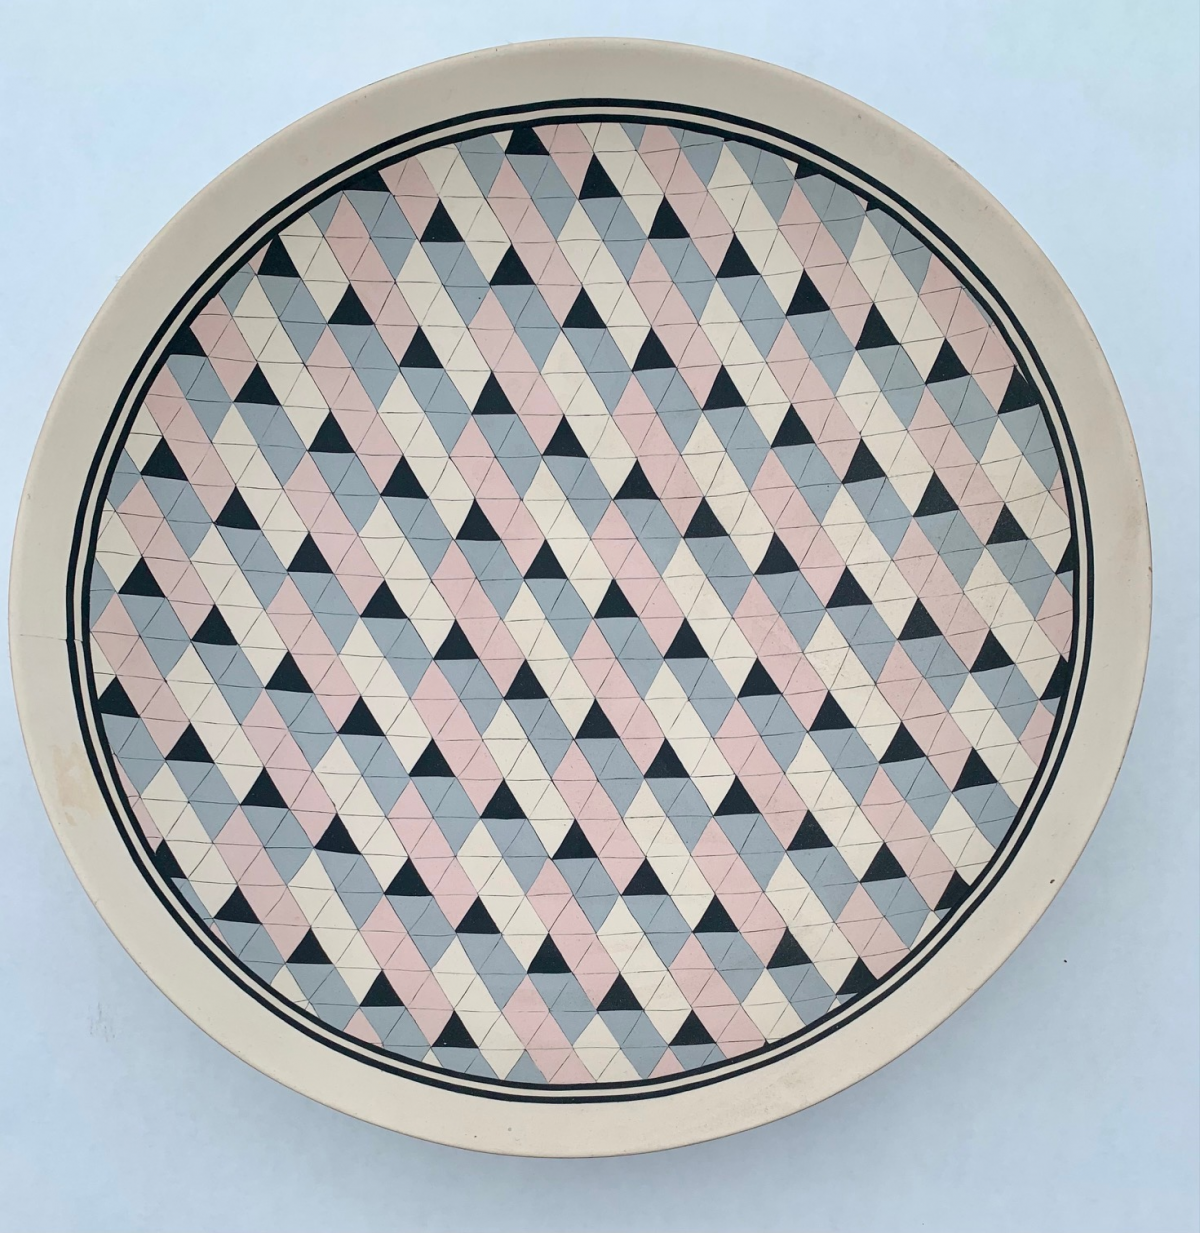 Ceramic plate with quilting pattern